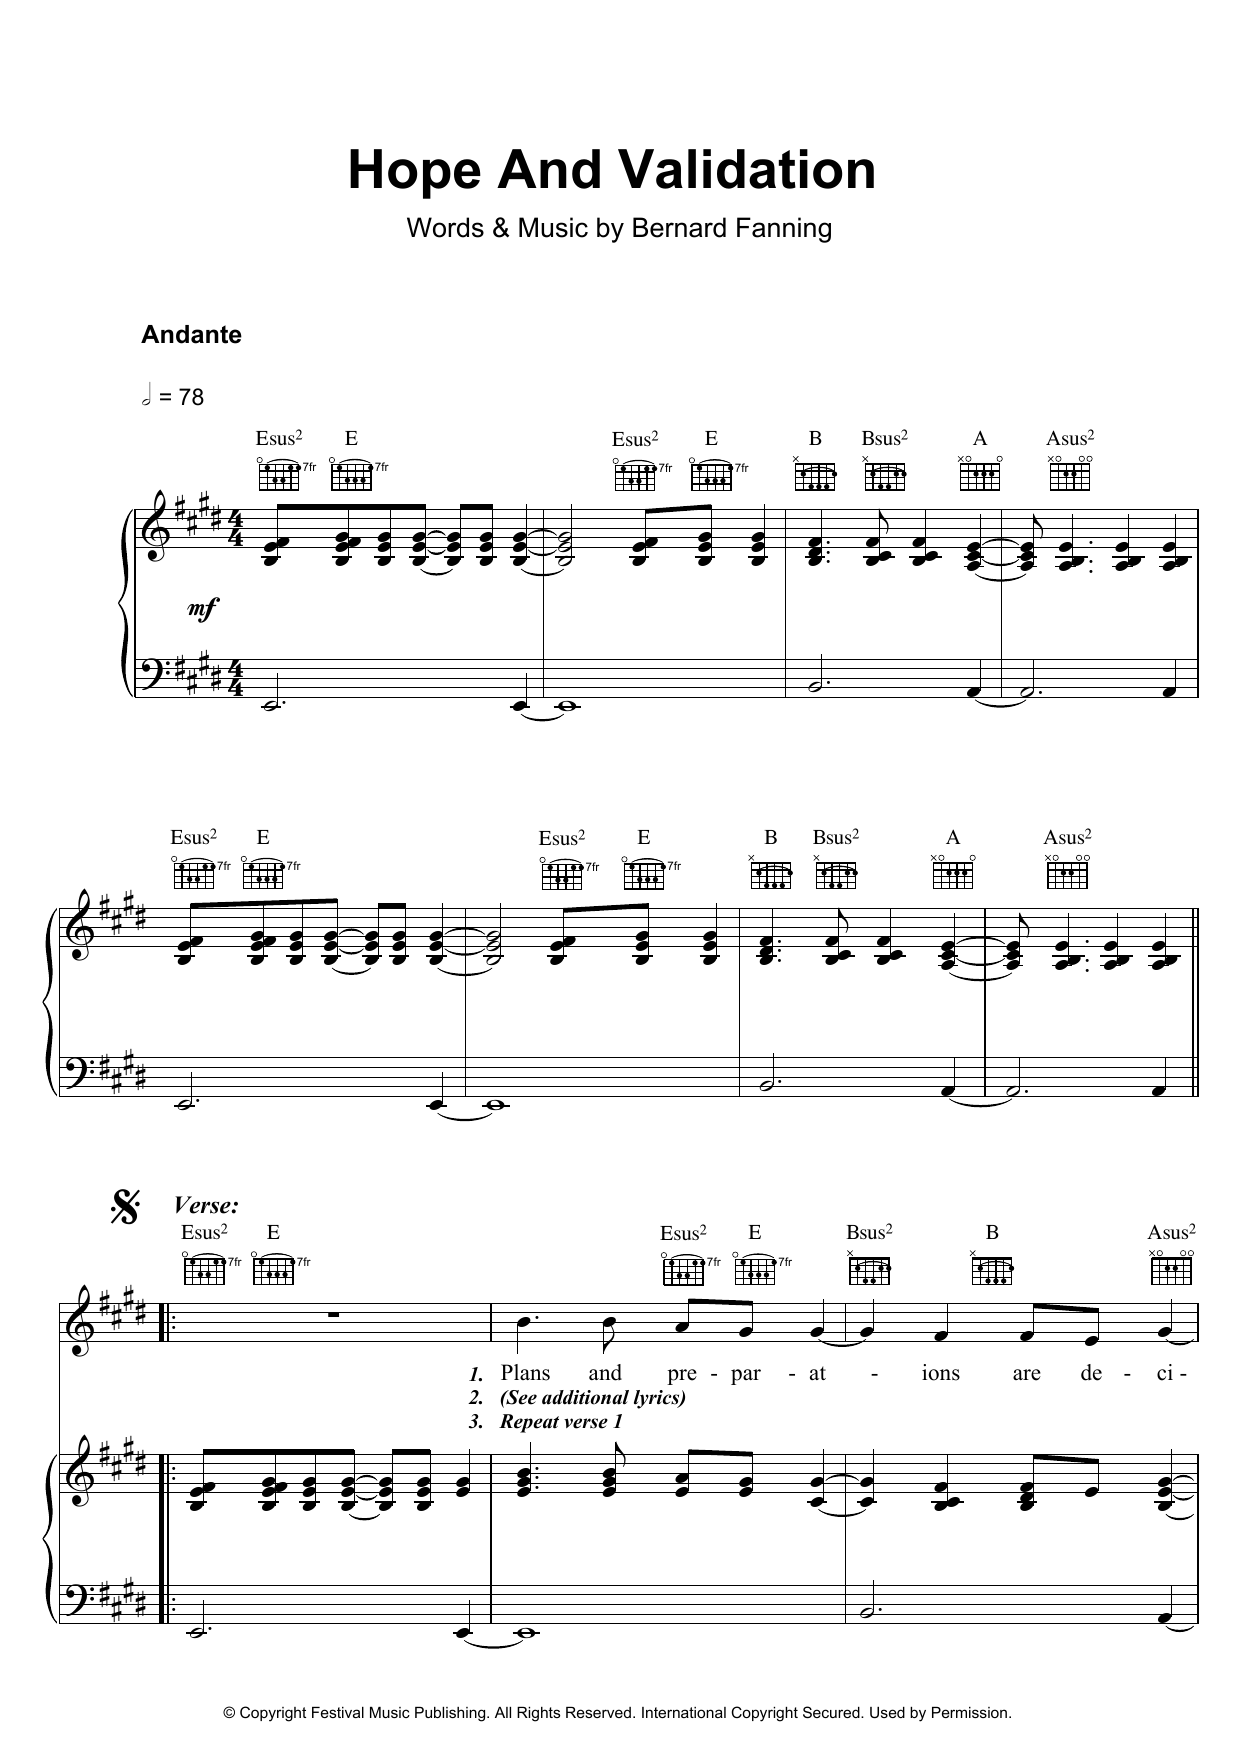 Bernard Fanning Hope And Validation sheet music preview music notes and score for Piano, Vocal & Guitar including 5 page(s)